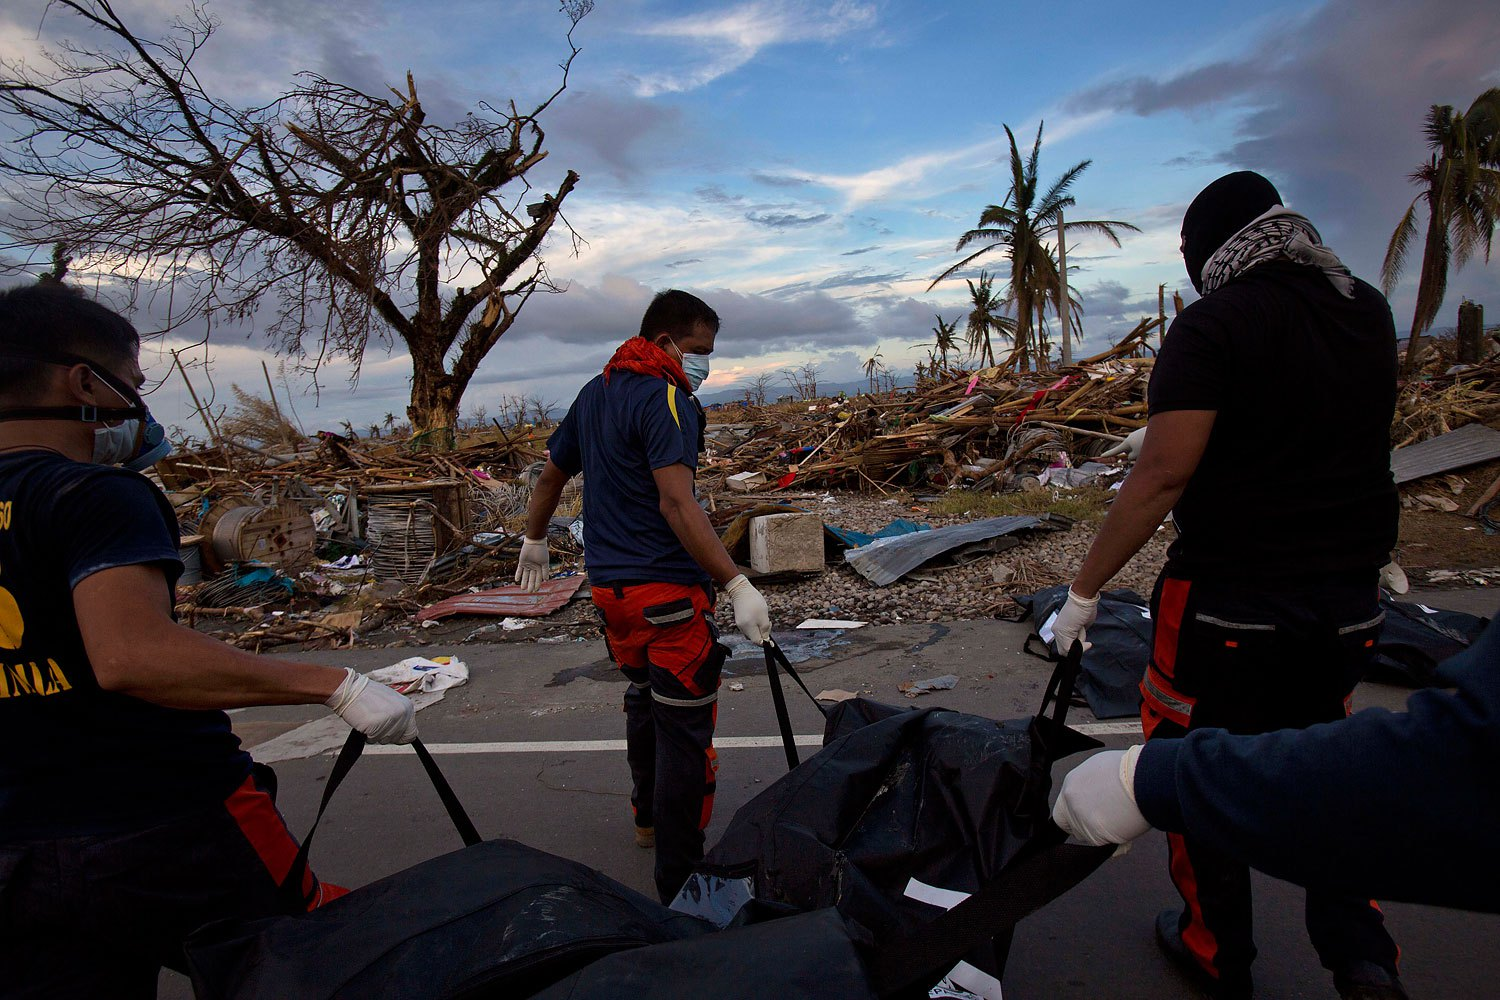 Members of a Philippines rescue team carry corpses in body bags as they search for the dead in the Typhoon Haiyan ravaged city of Tacloban on November 13, 2013.